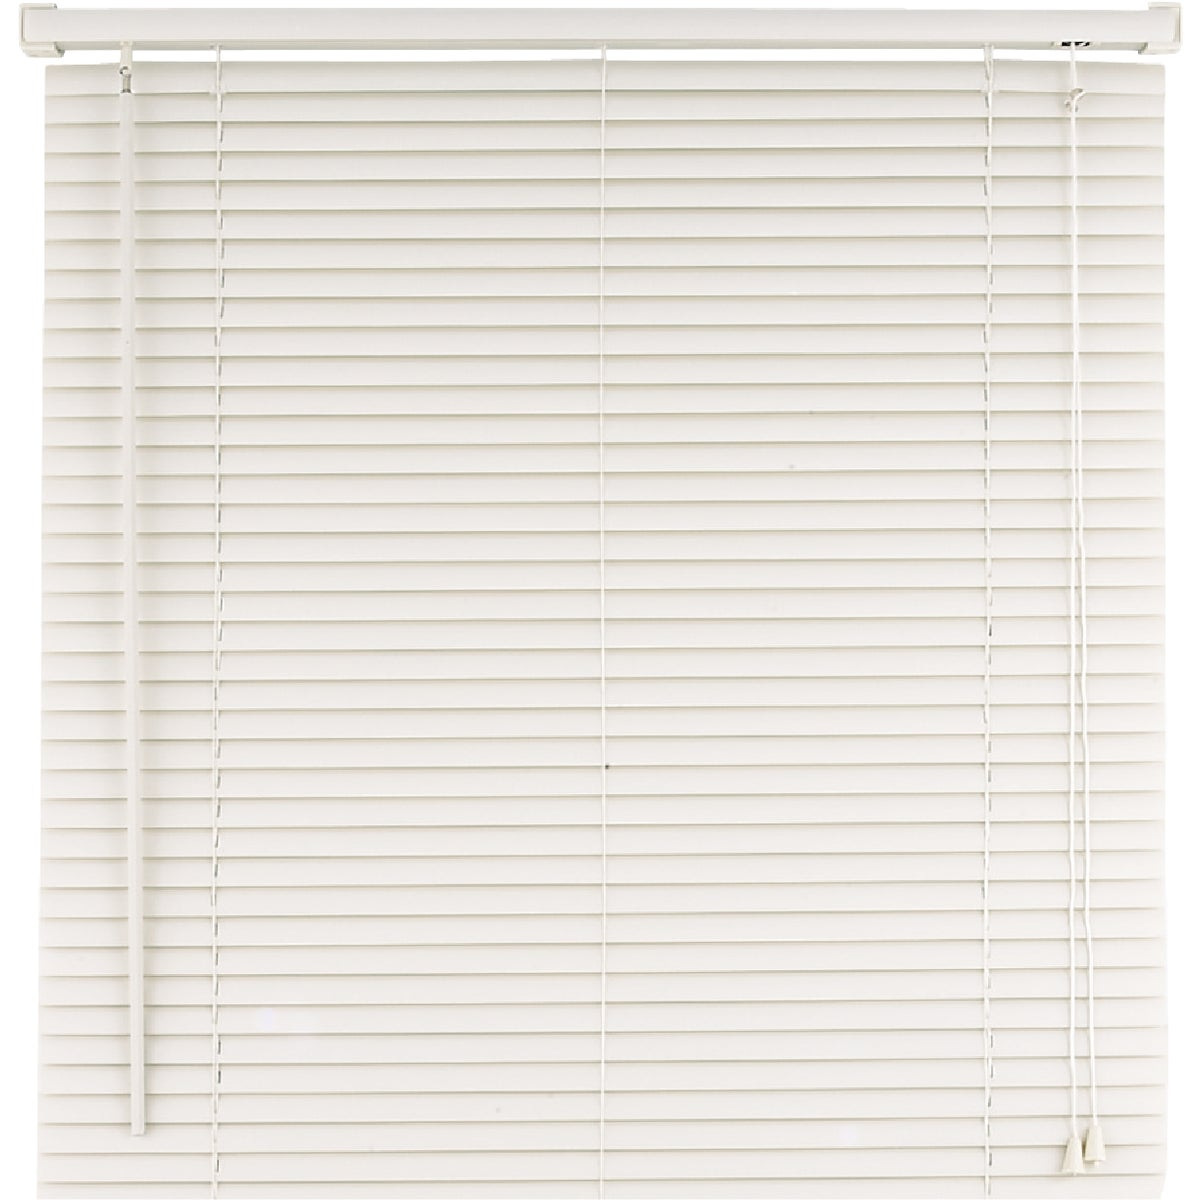 39X72 WHITE MINI BLIND - 3972W by Lotus Wind Incom